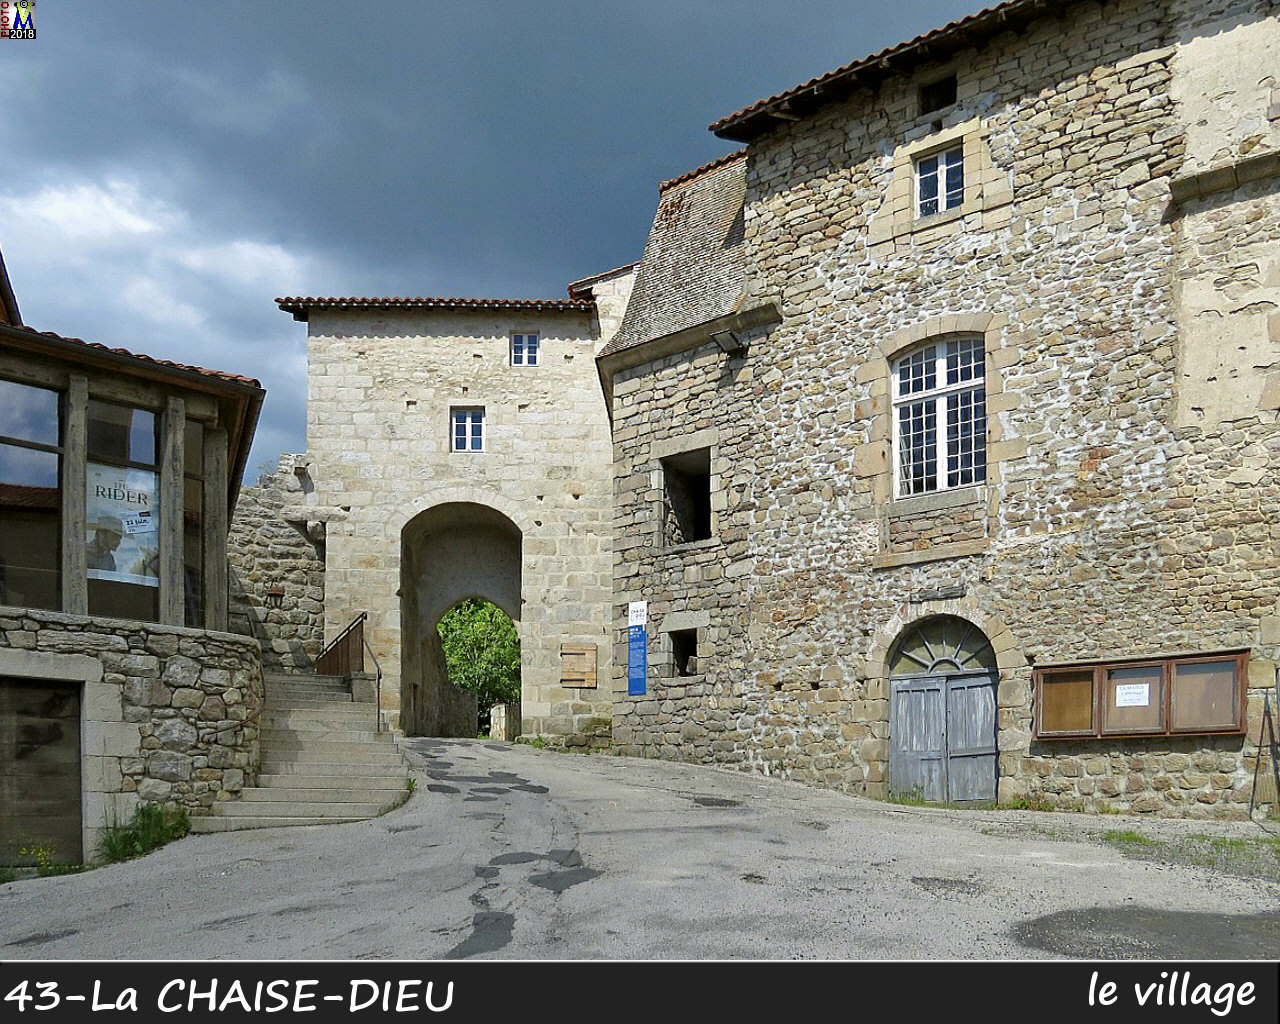 43CHAISE-DIEU_village_122.jpg